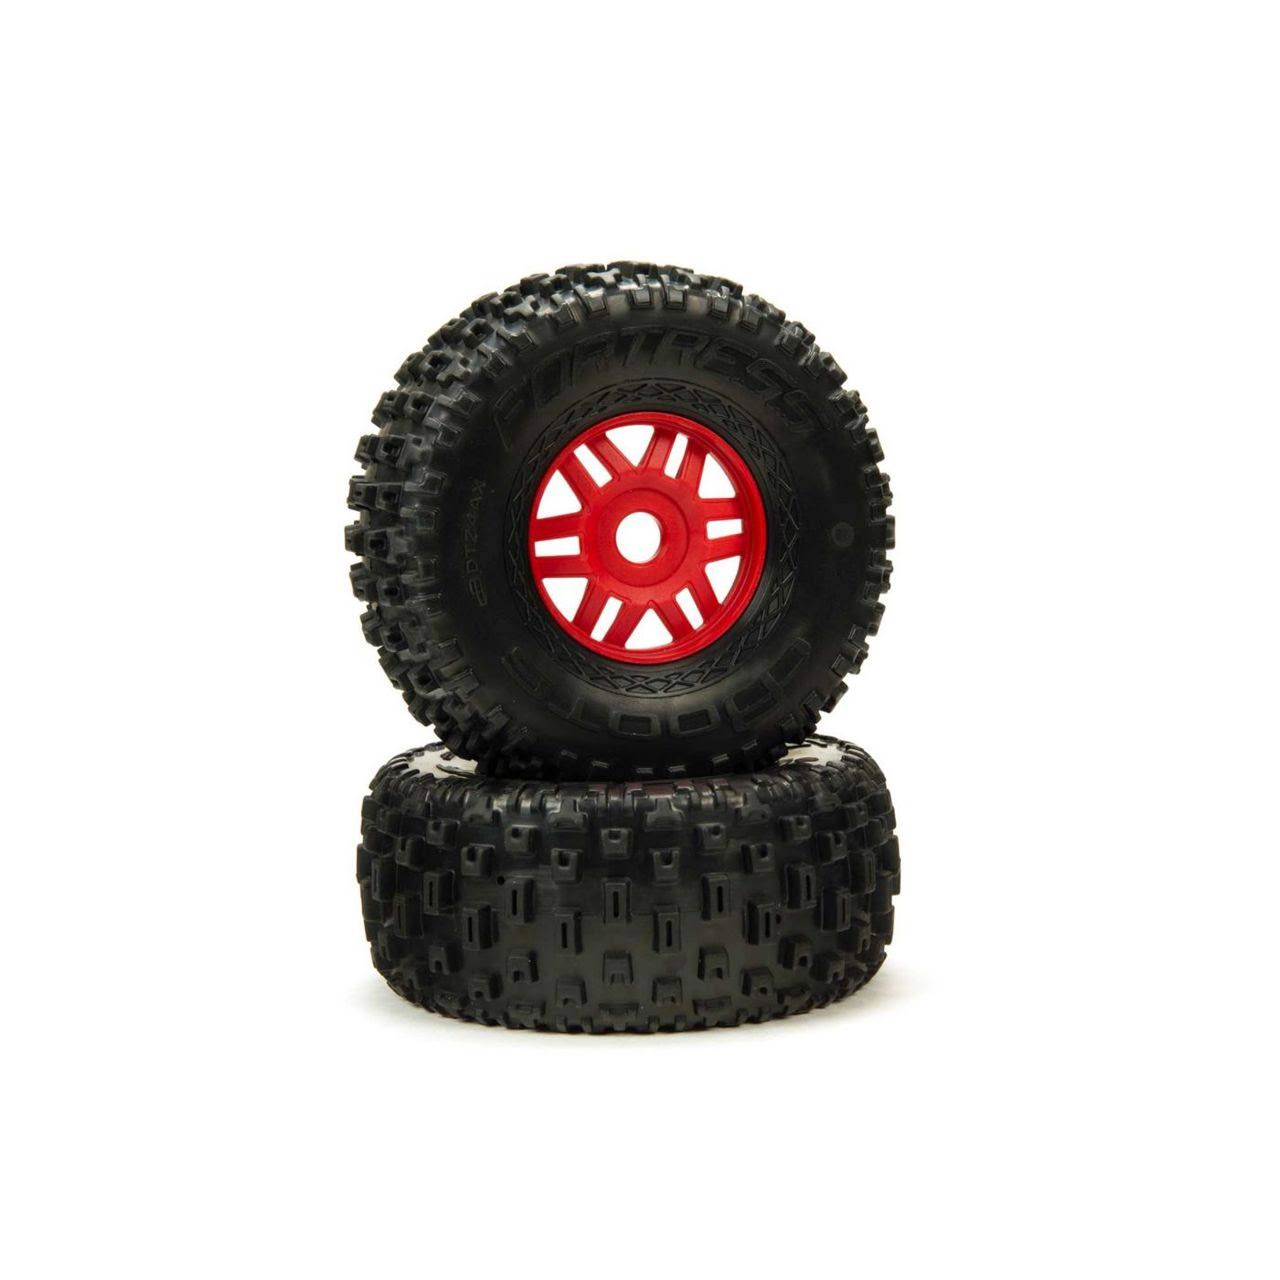 Arrma dBoots 'Fortress' Tire Set Glued - Red ARA550065